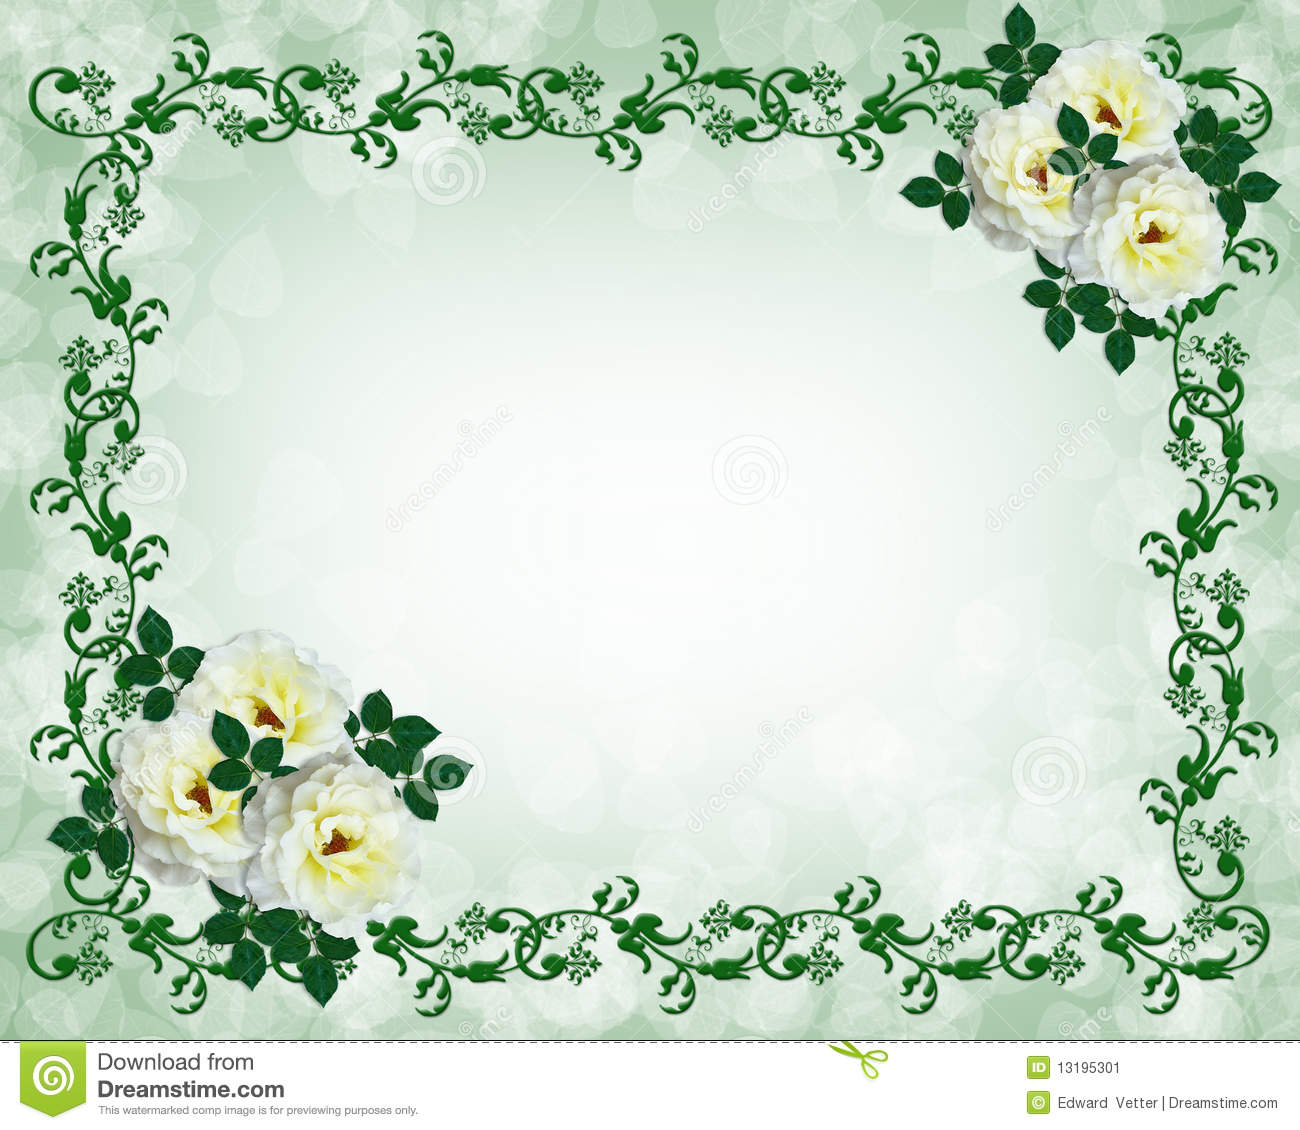 template for wedding invitation, stationery, border or frame